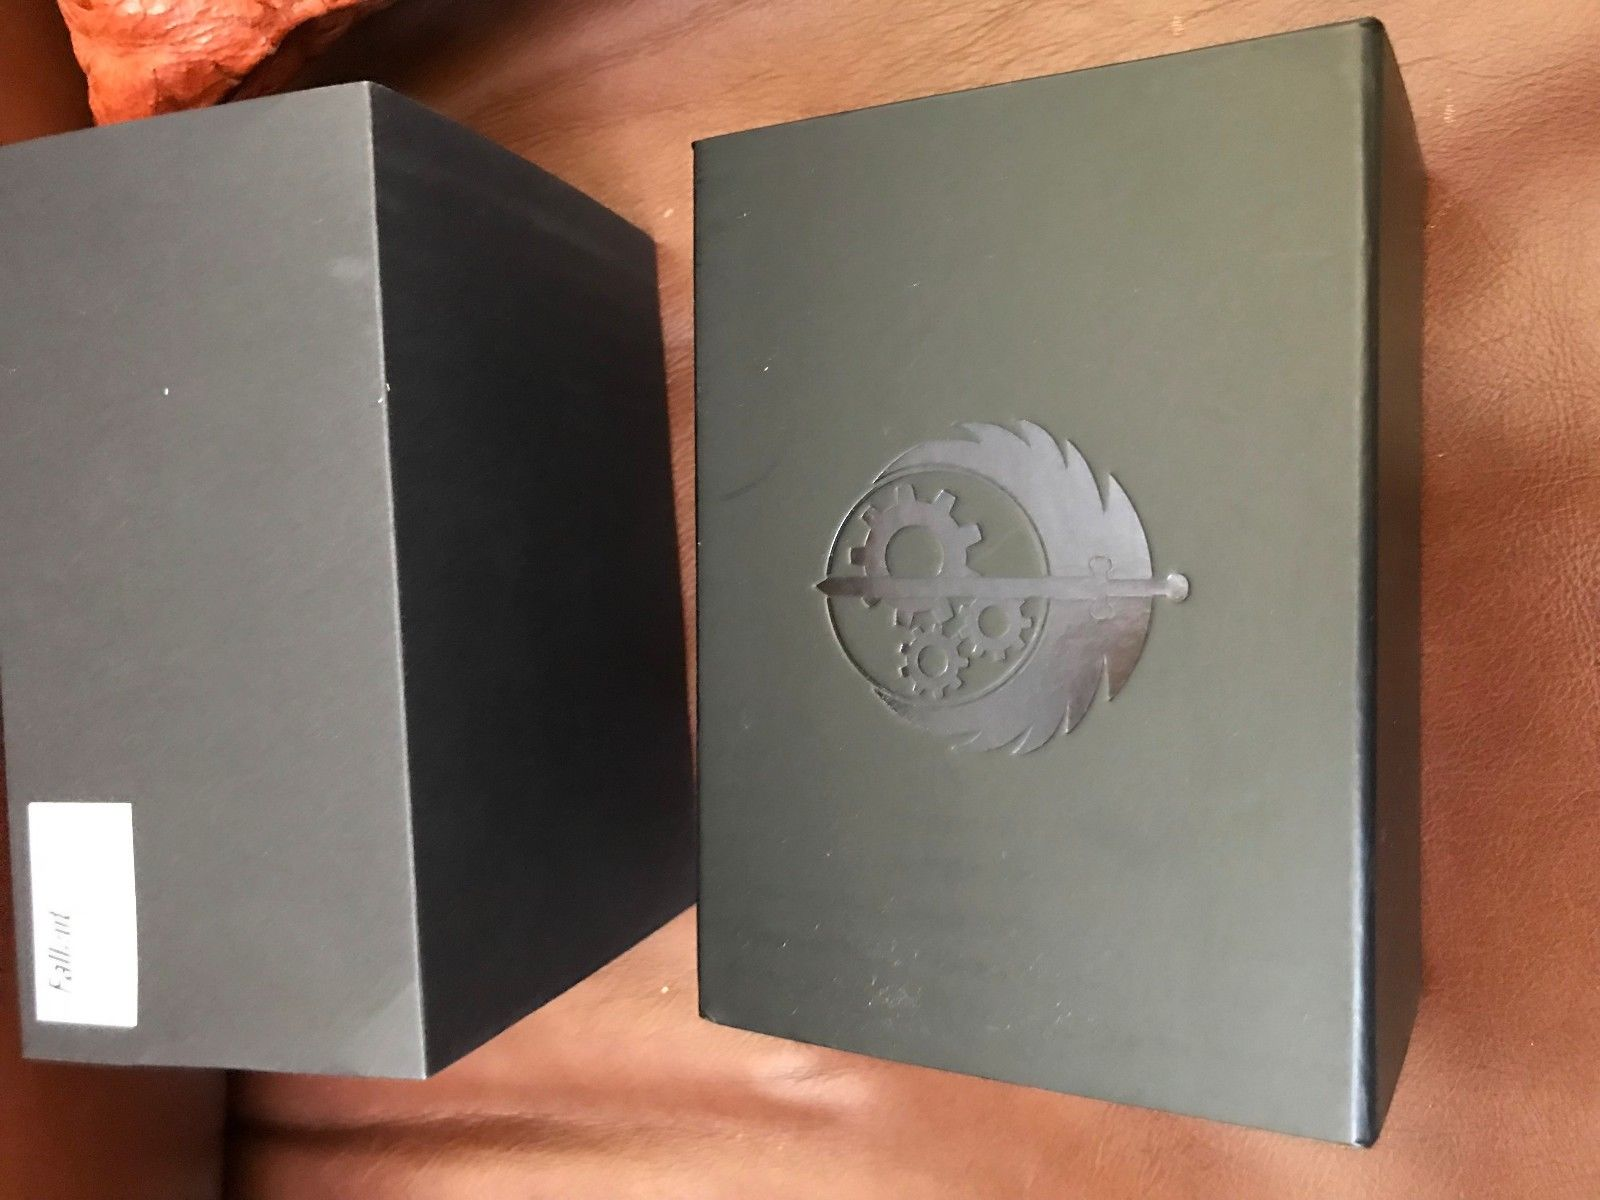 OFFICIAL Fallout BROTHERHOOD OF STEEL WATCH LIMITED 500 RARE Bethesda Softworks MSTR Meister 2